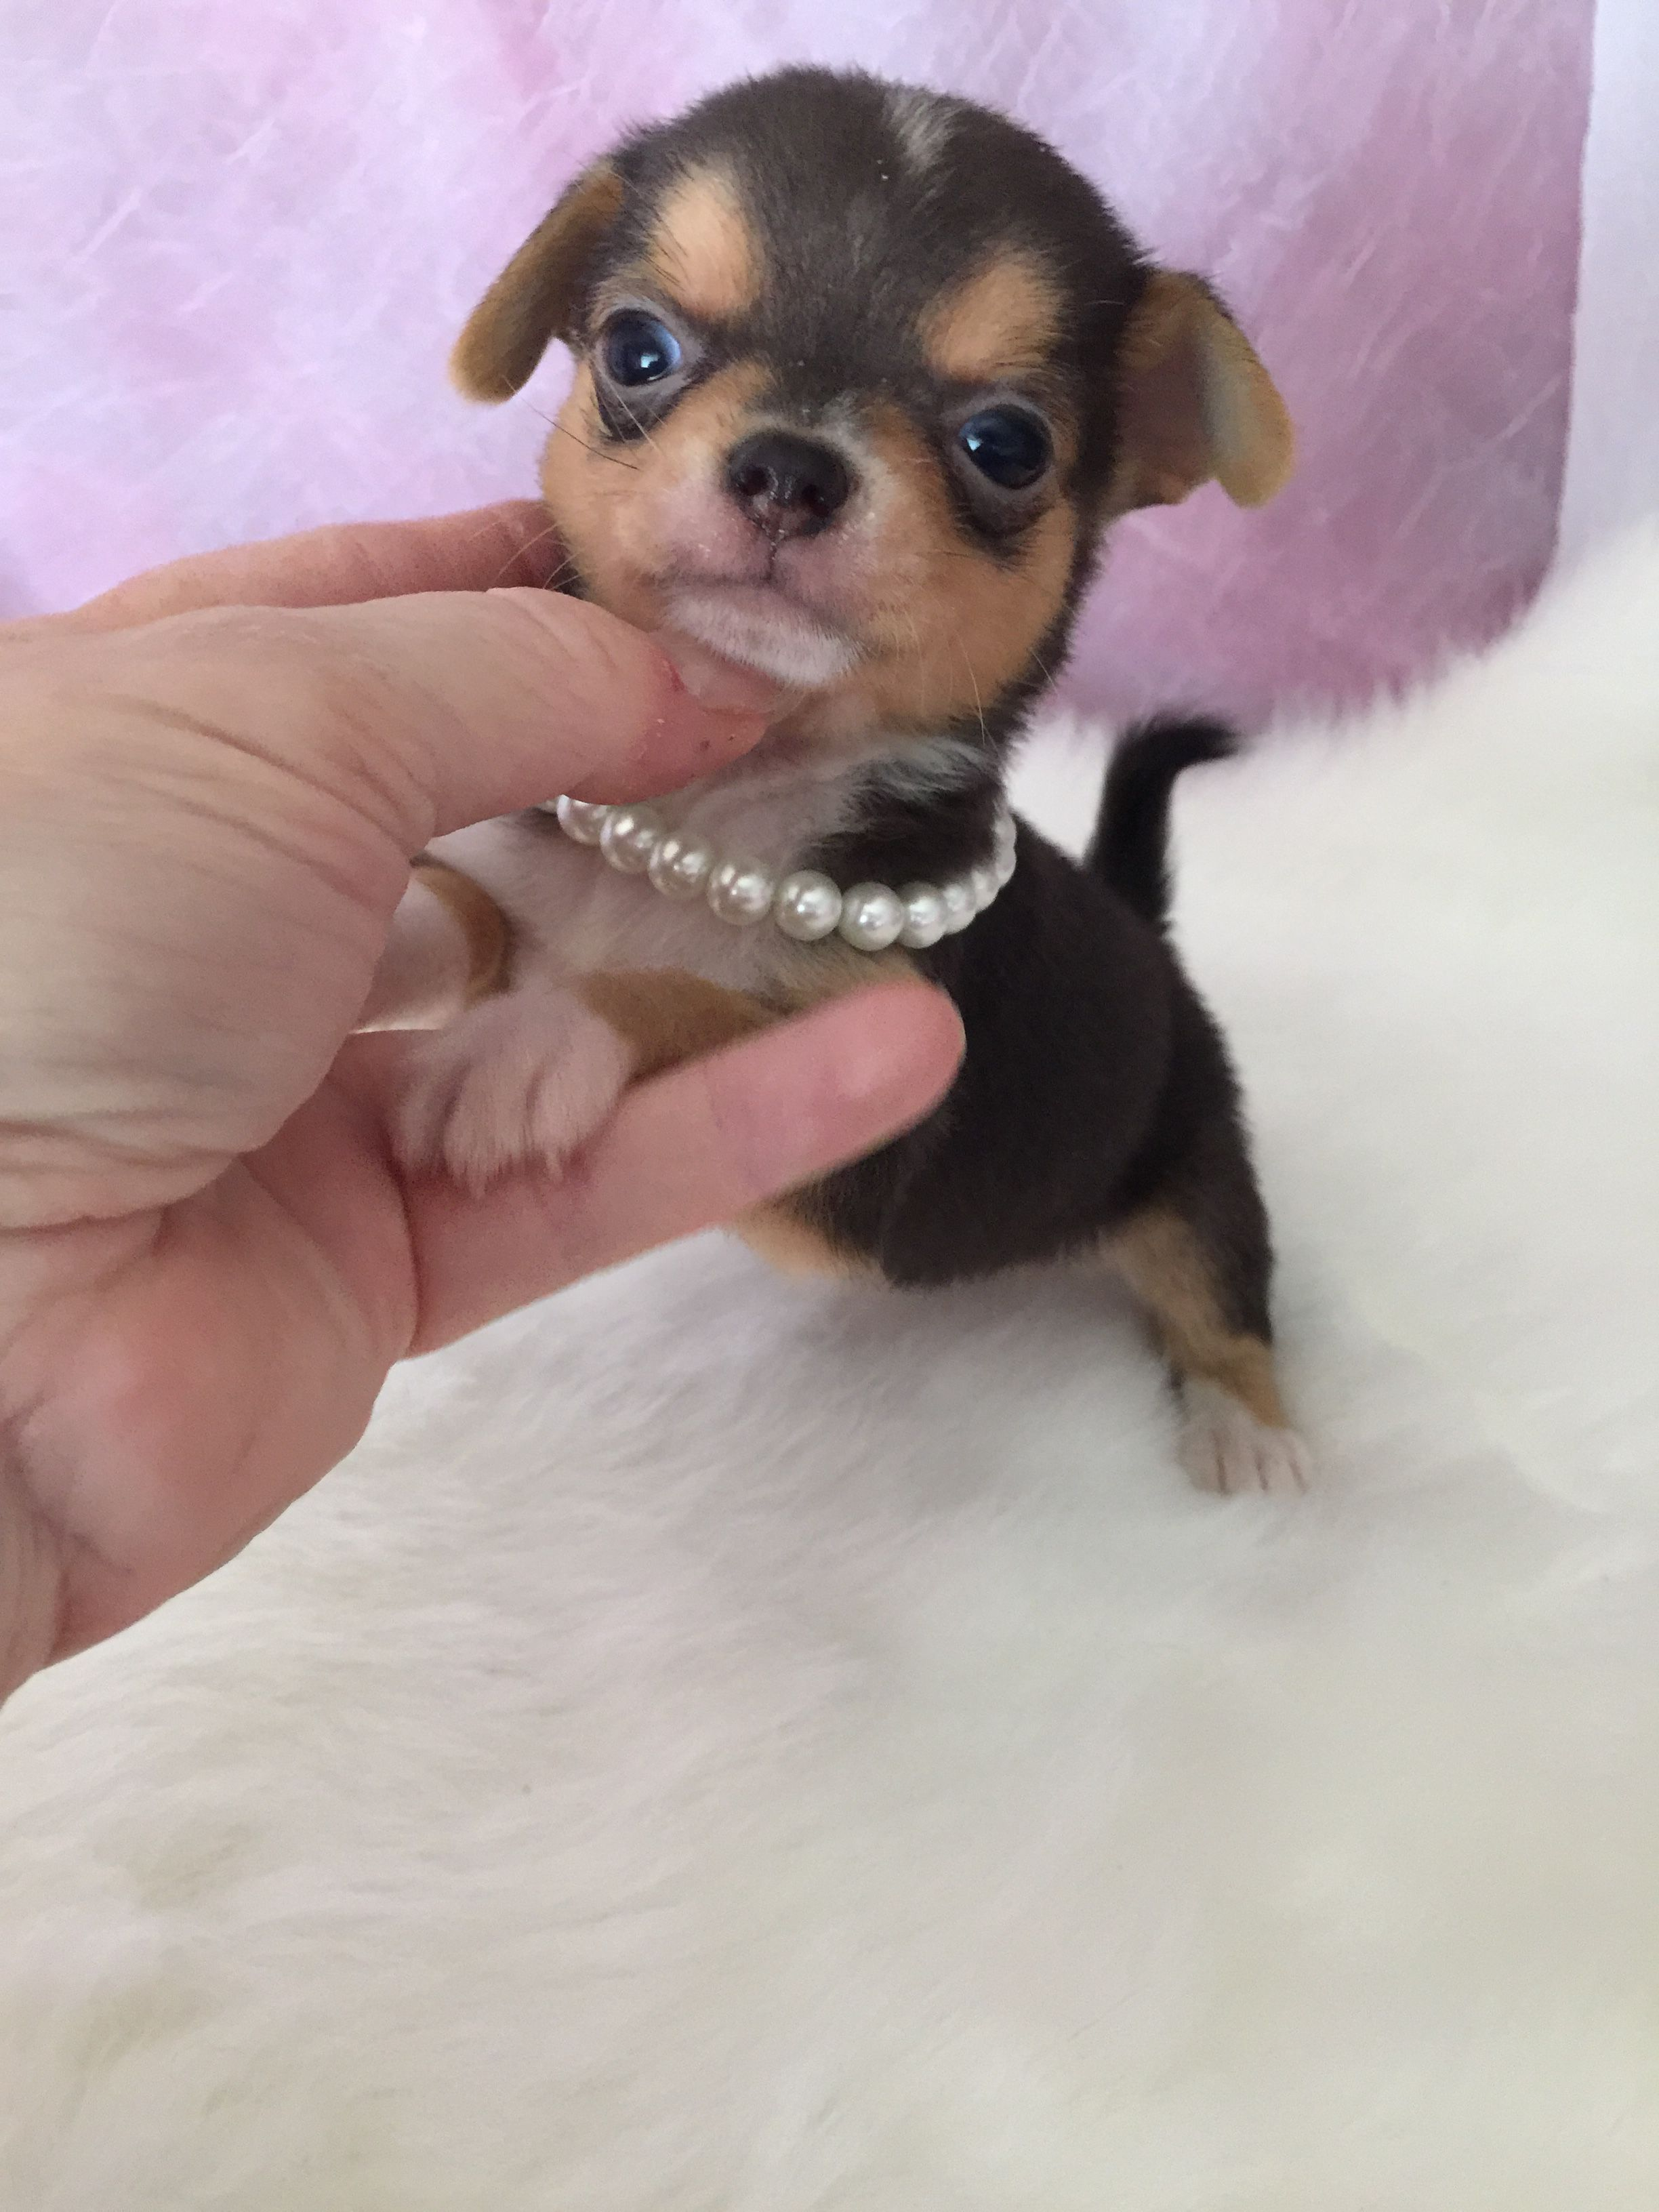 Teacup Chihuahua Puppies For Sale We Specialize In Teacup Chihuahuas Here At Chihuahua Tea Teacup Chihuahua Puppies Cute Chihuahua Chihuahua Puppies For Sale